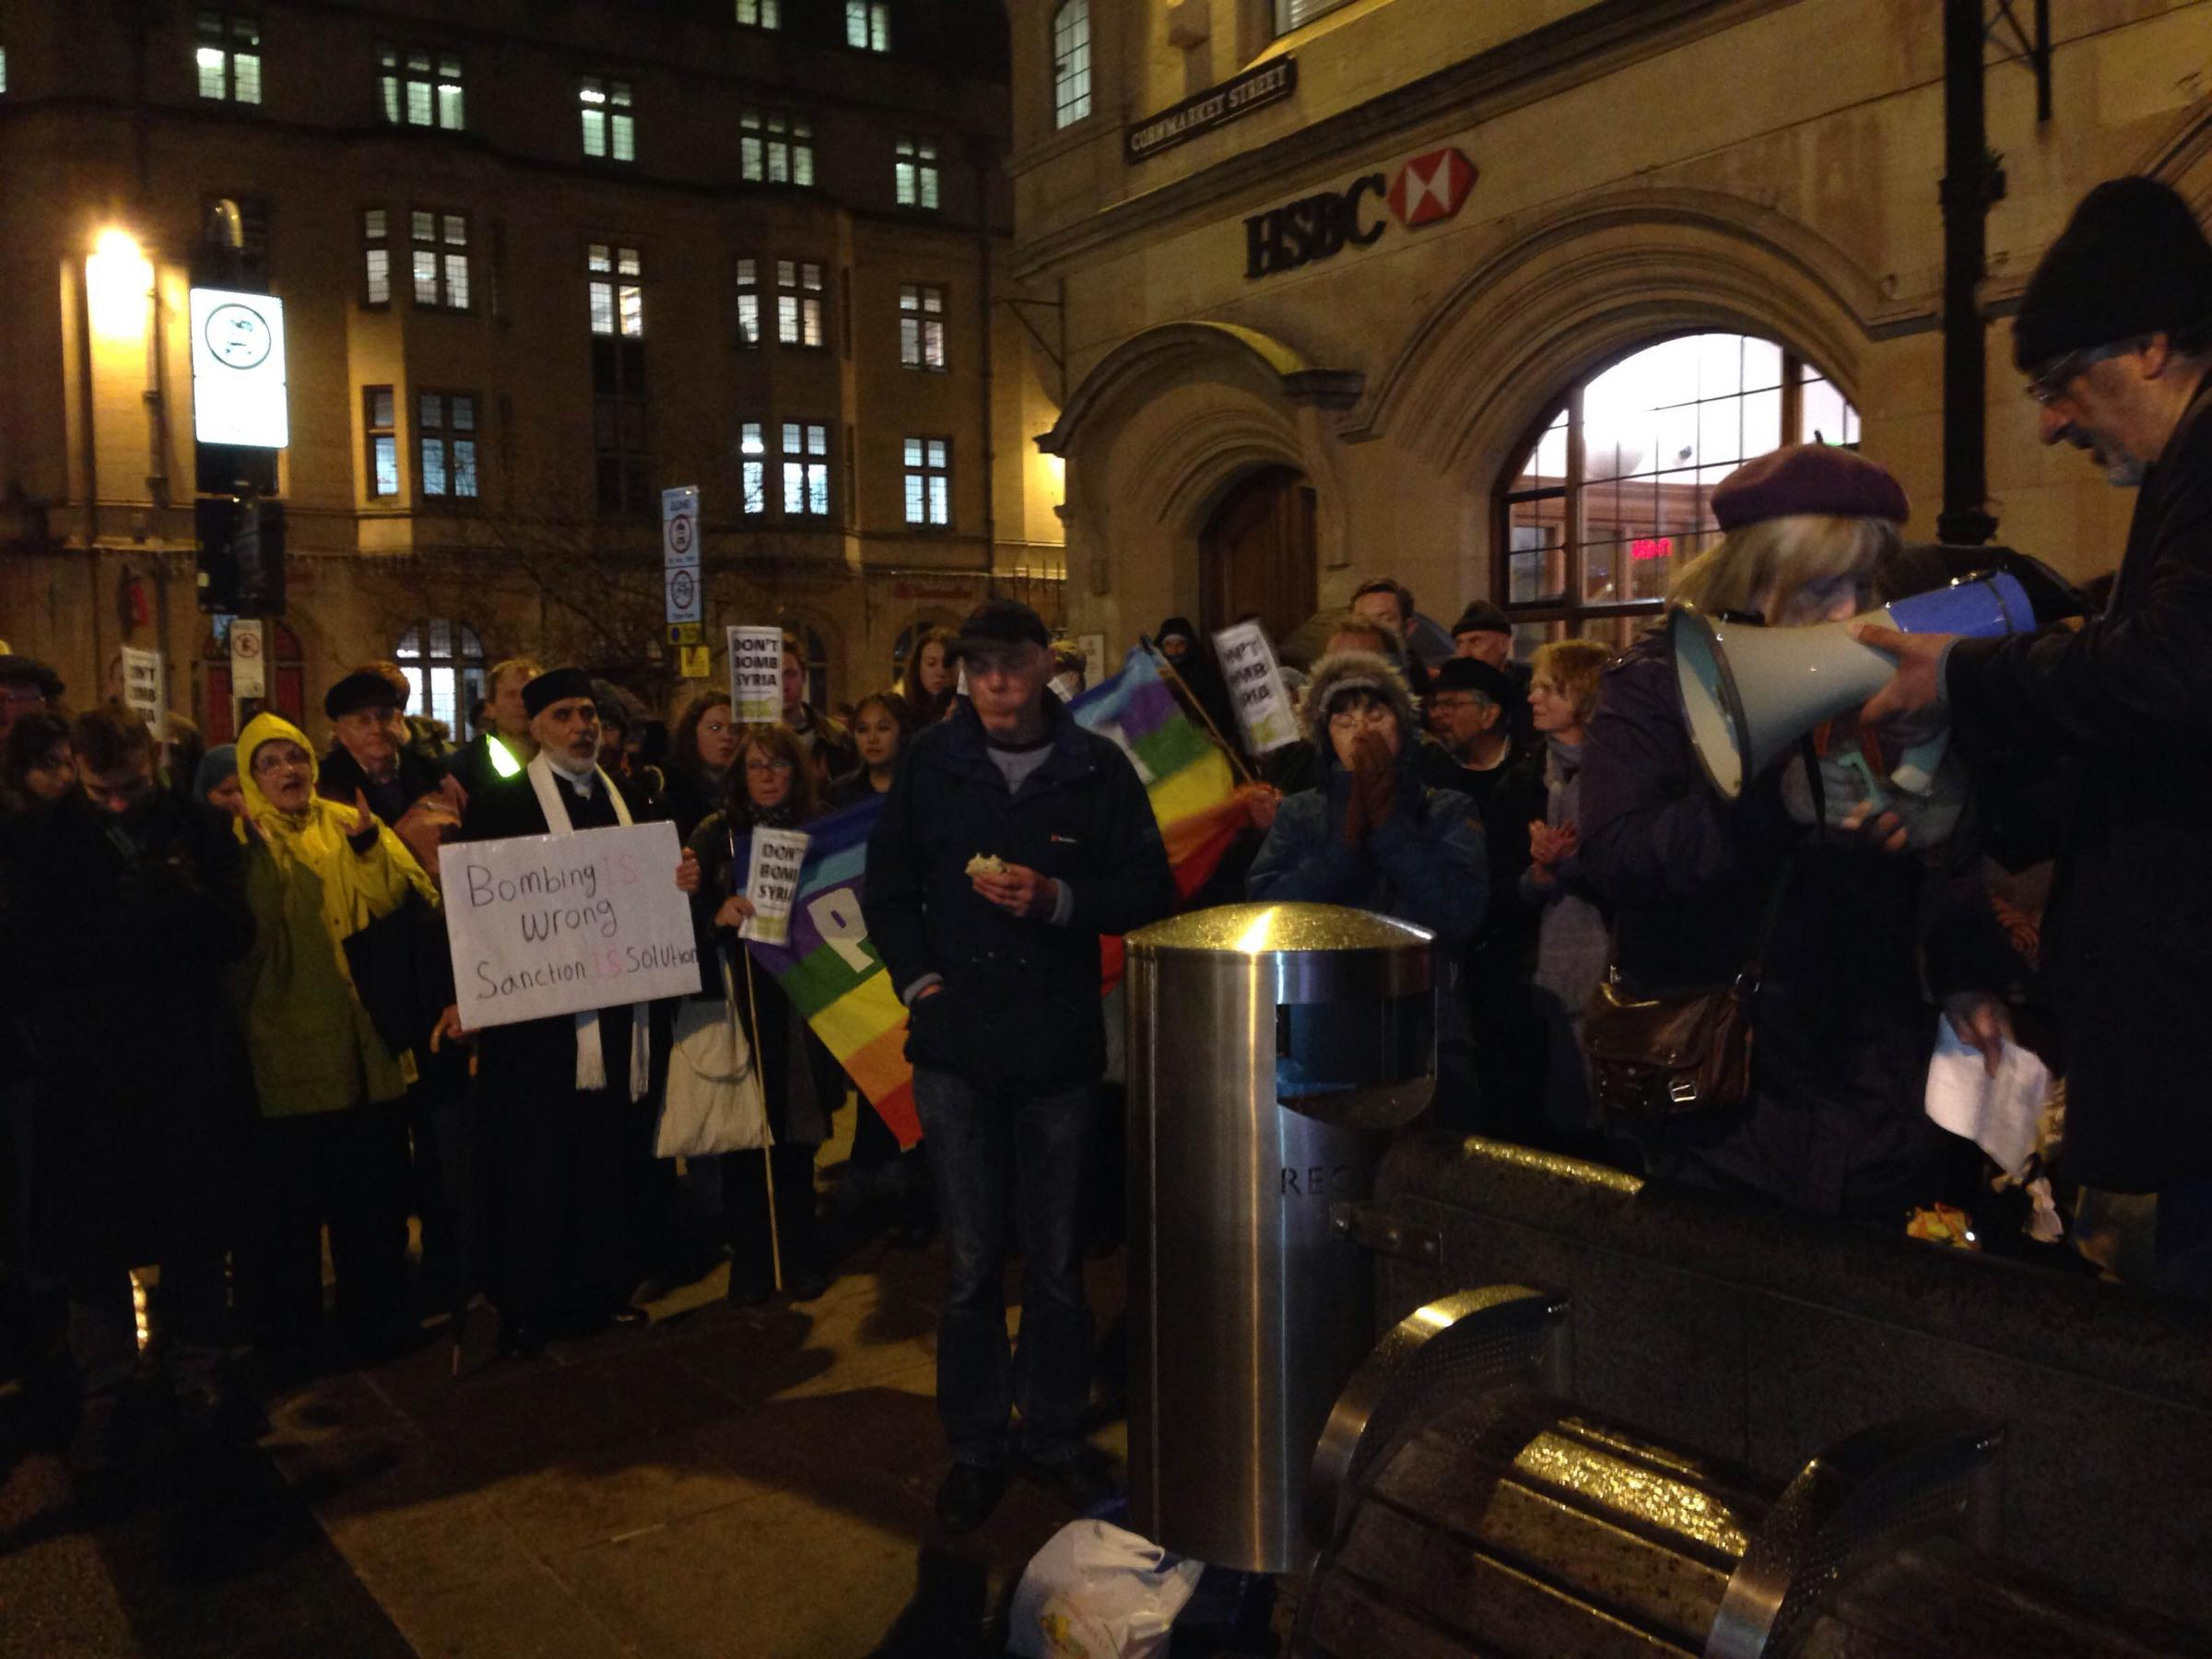 Protesters gather in Oxford for demonstration against bombing Syria